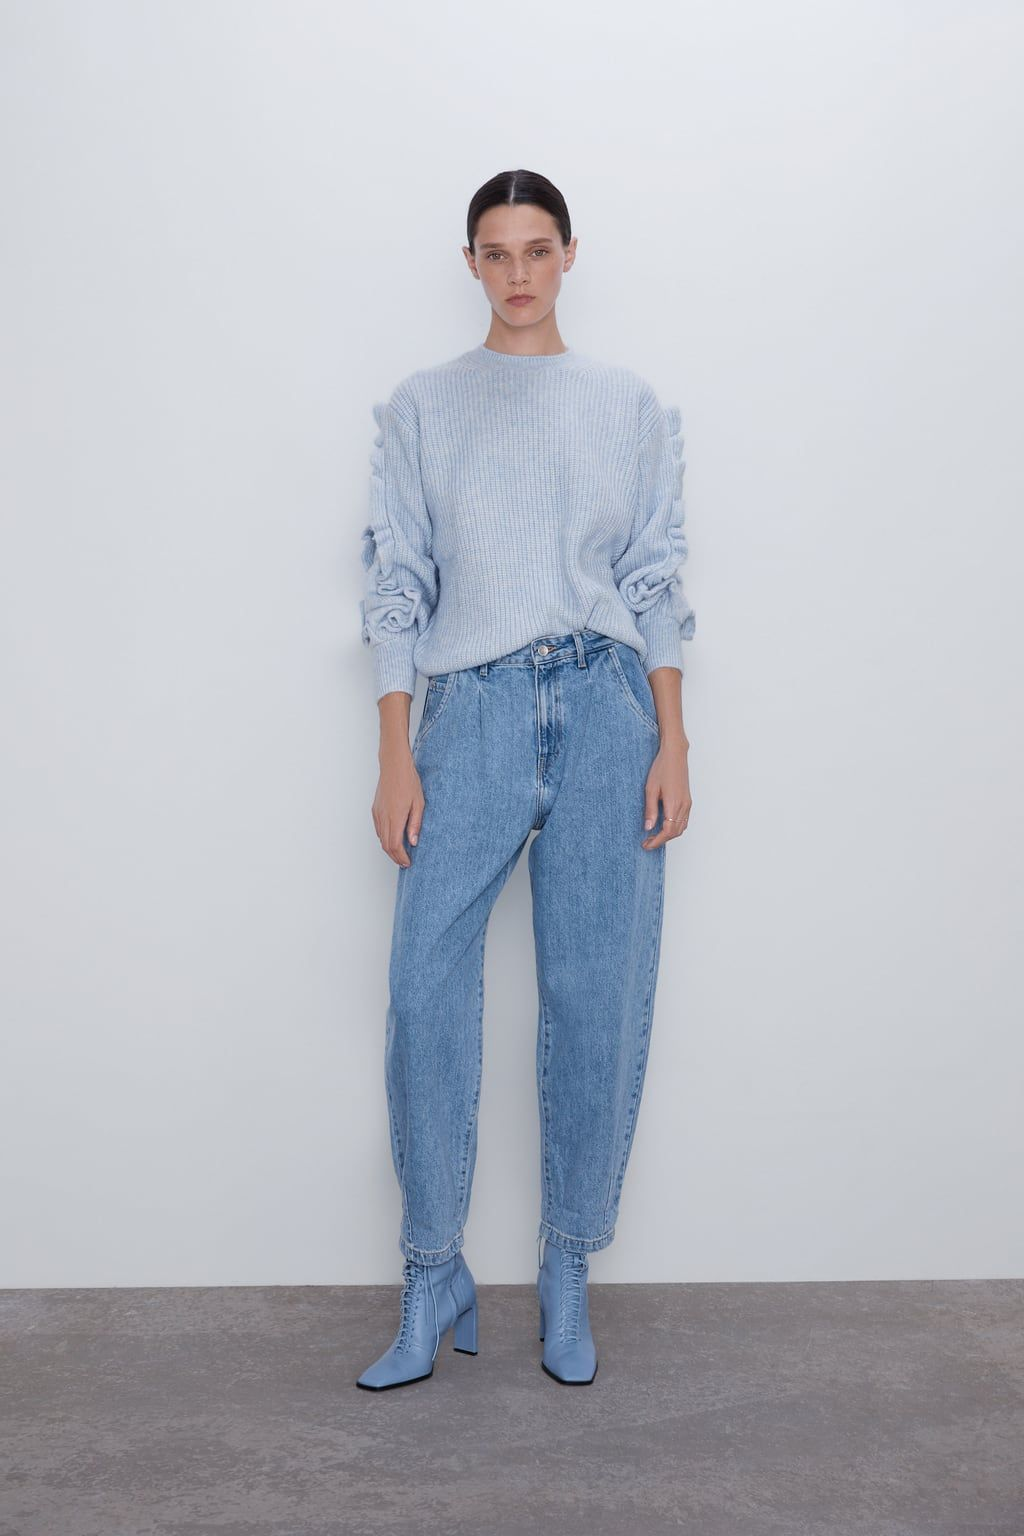 JEANS Z1975 SLOUCHY PINZAS in 2019 | Denim trends, Jeans